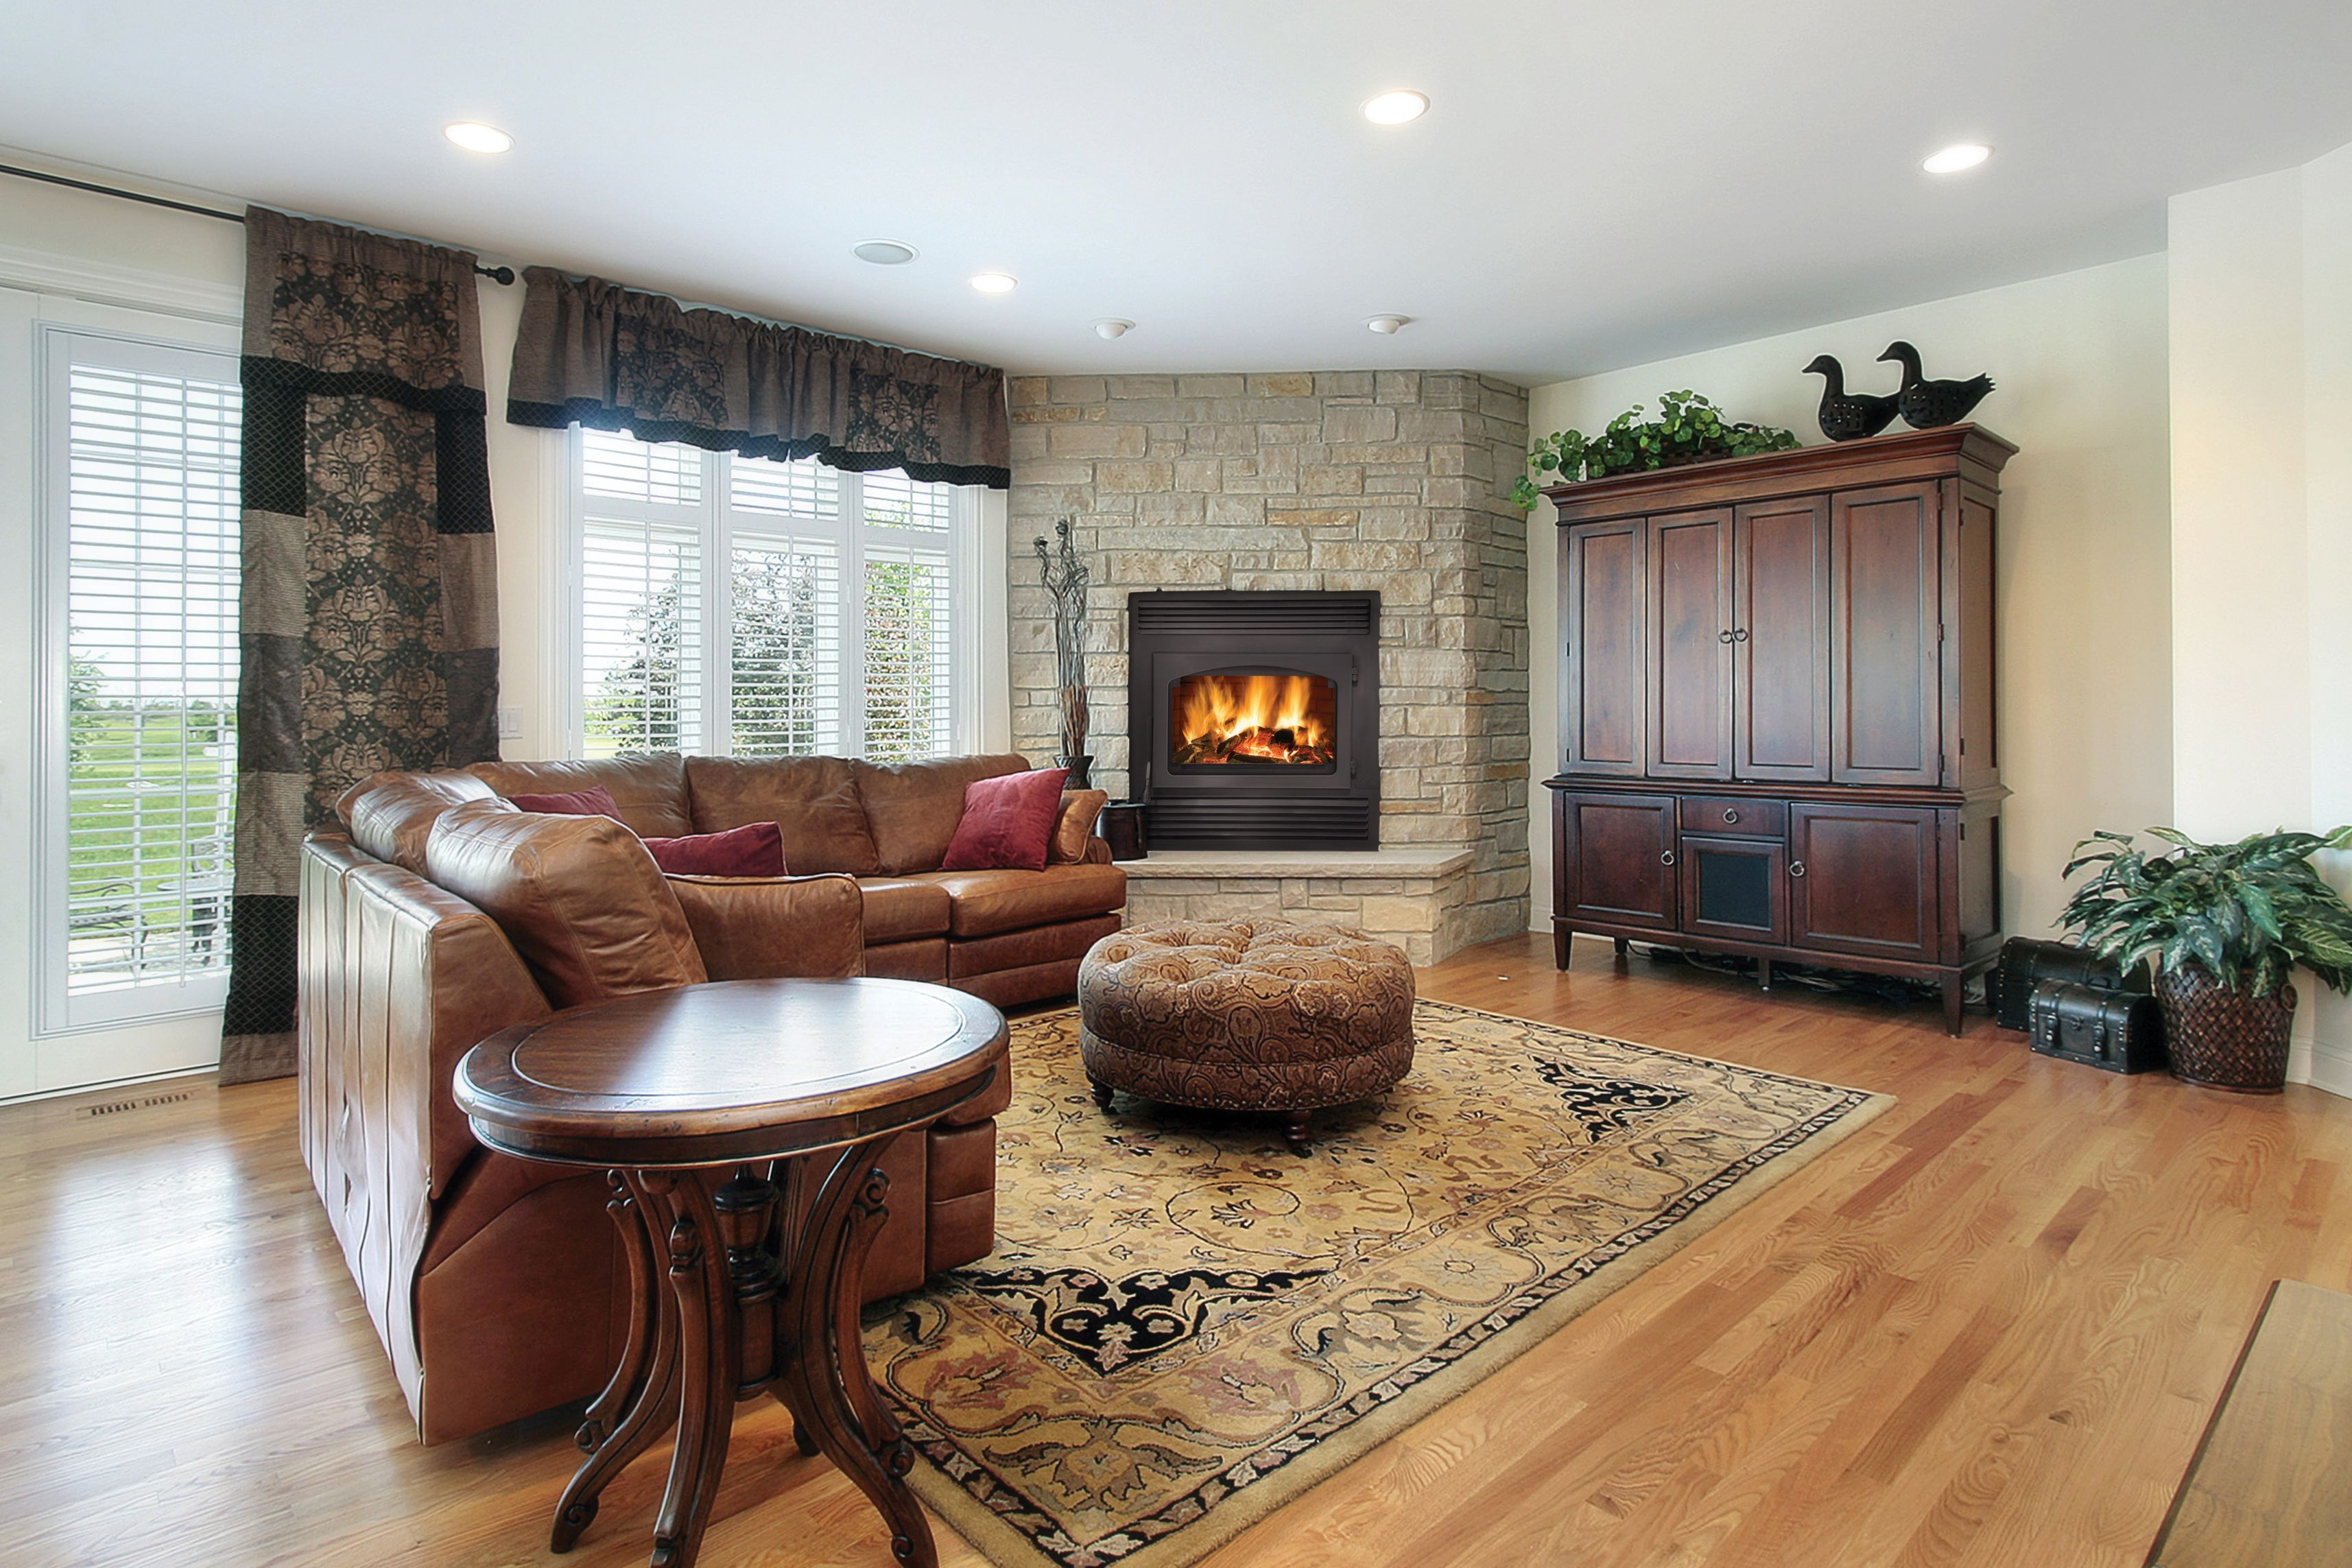 nz26 napoleon fireplace a wood fireplace that heats your home for